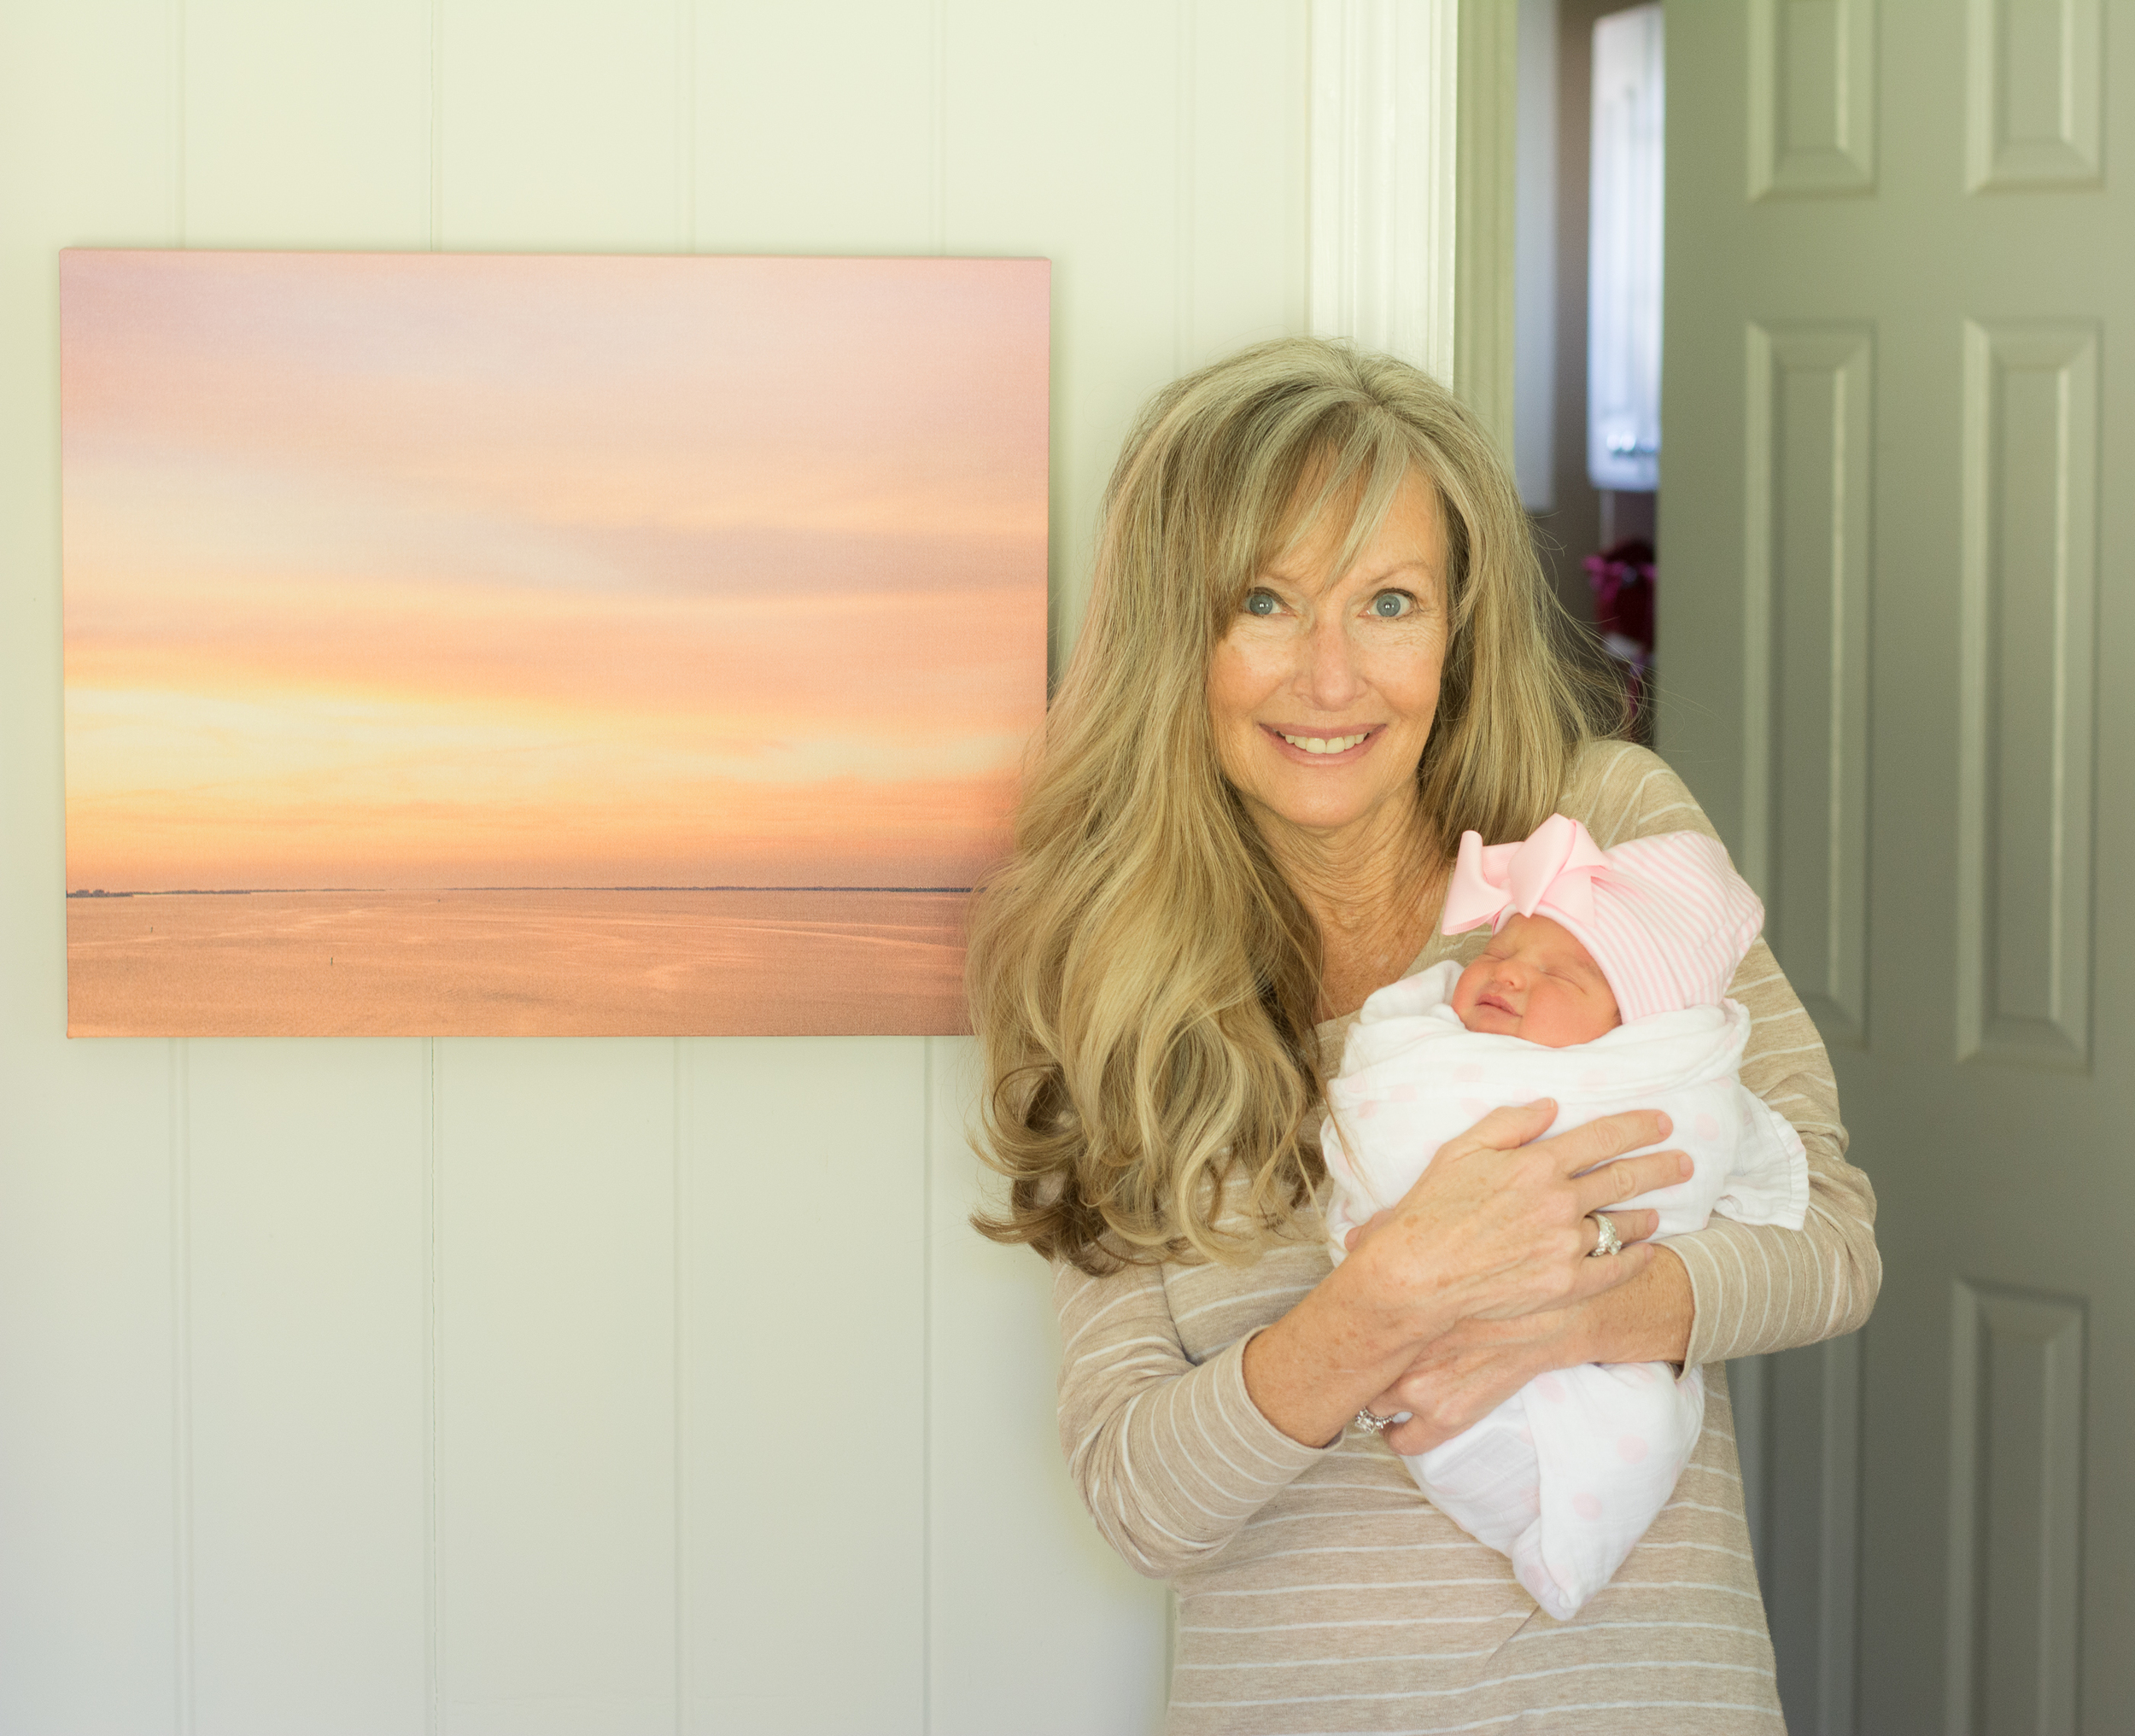 My own grand-bundle next to a pink sunset I captured for her room. She is destined to love the beach!